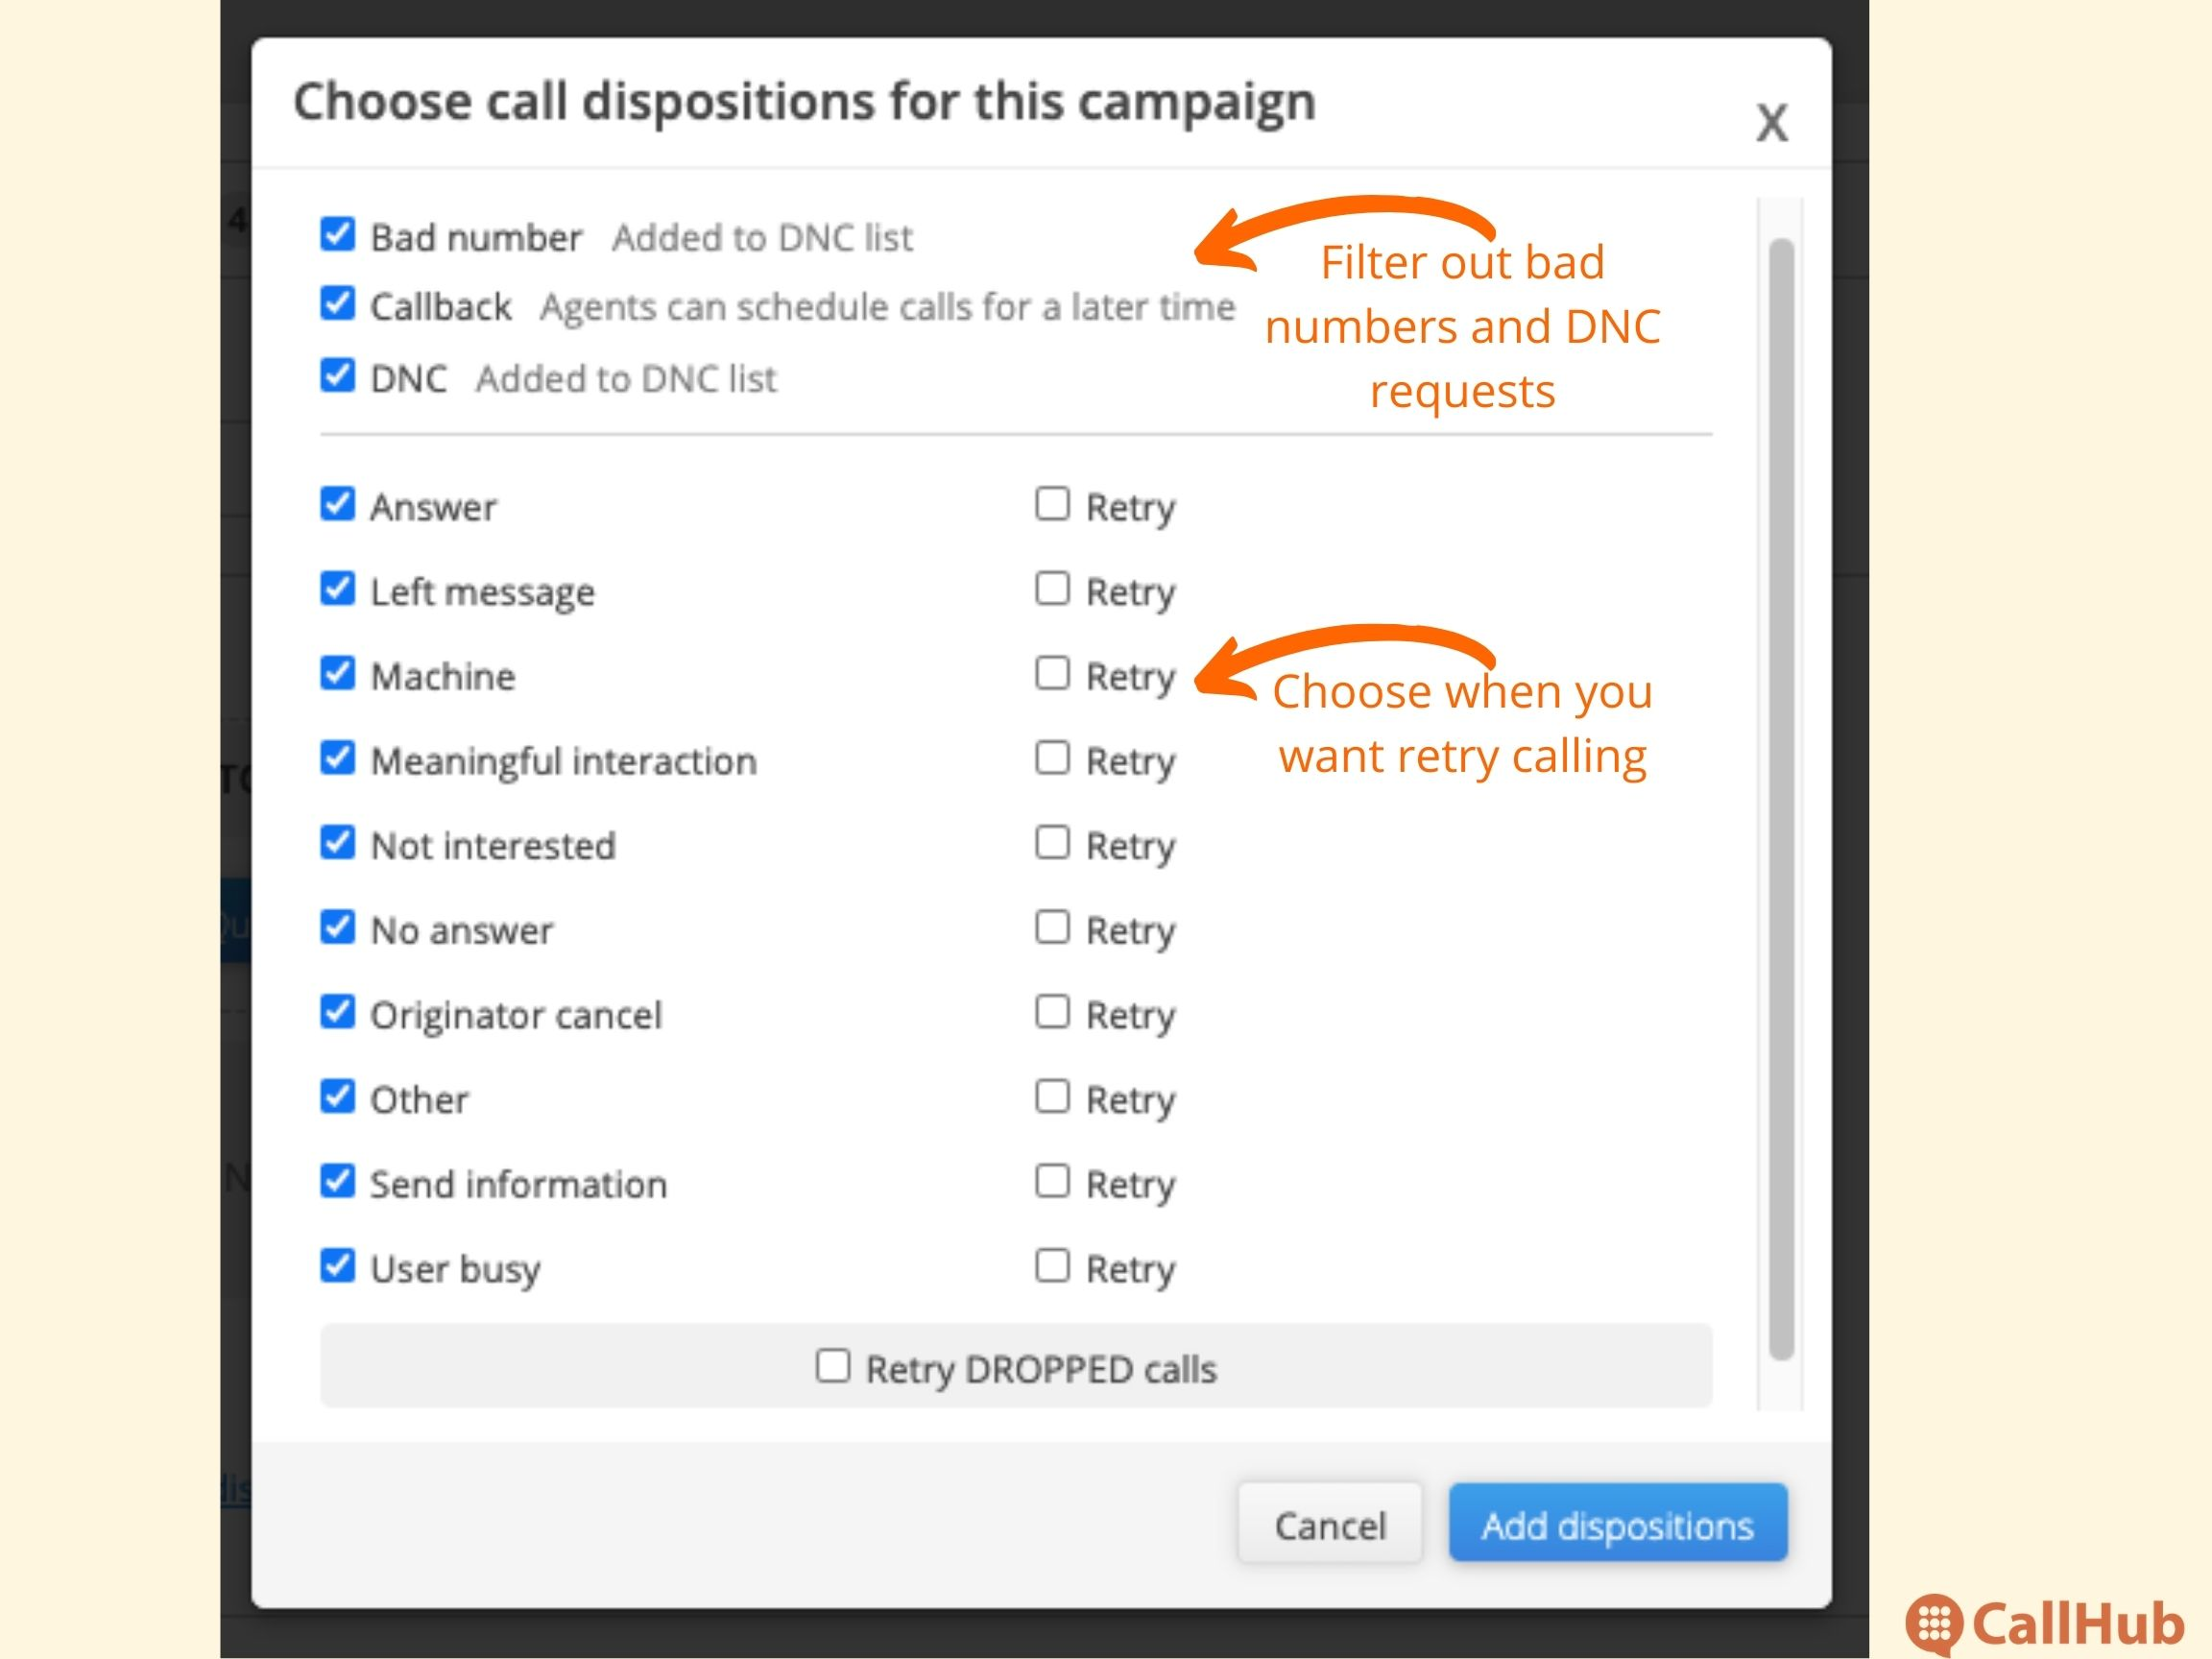 callhub-call-disposition copy